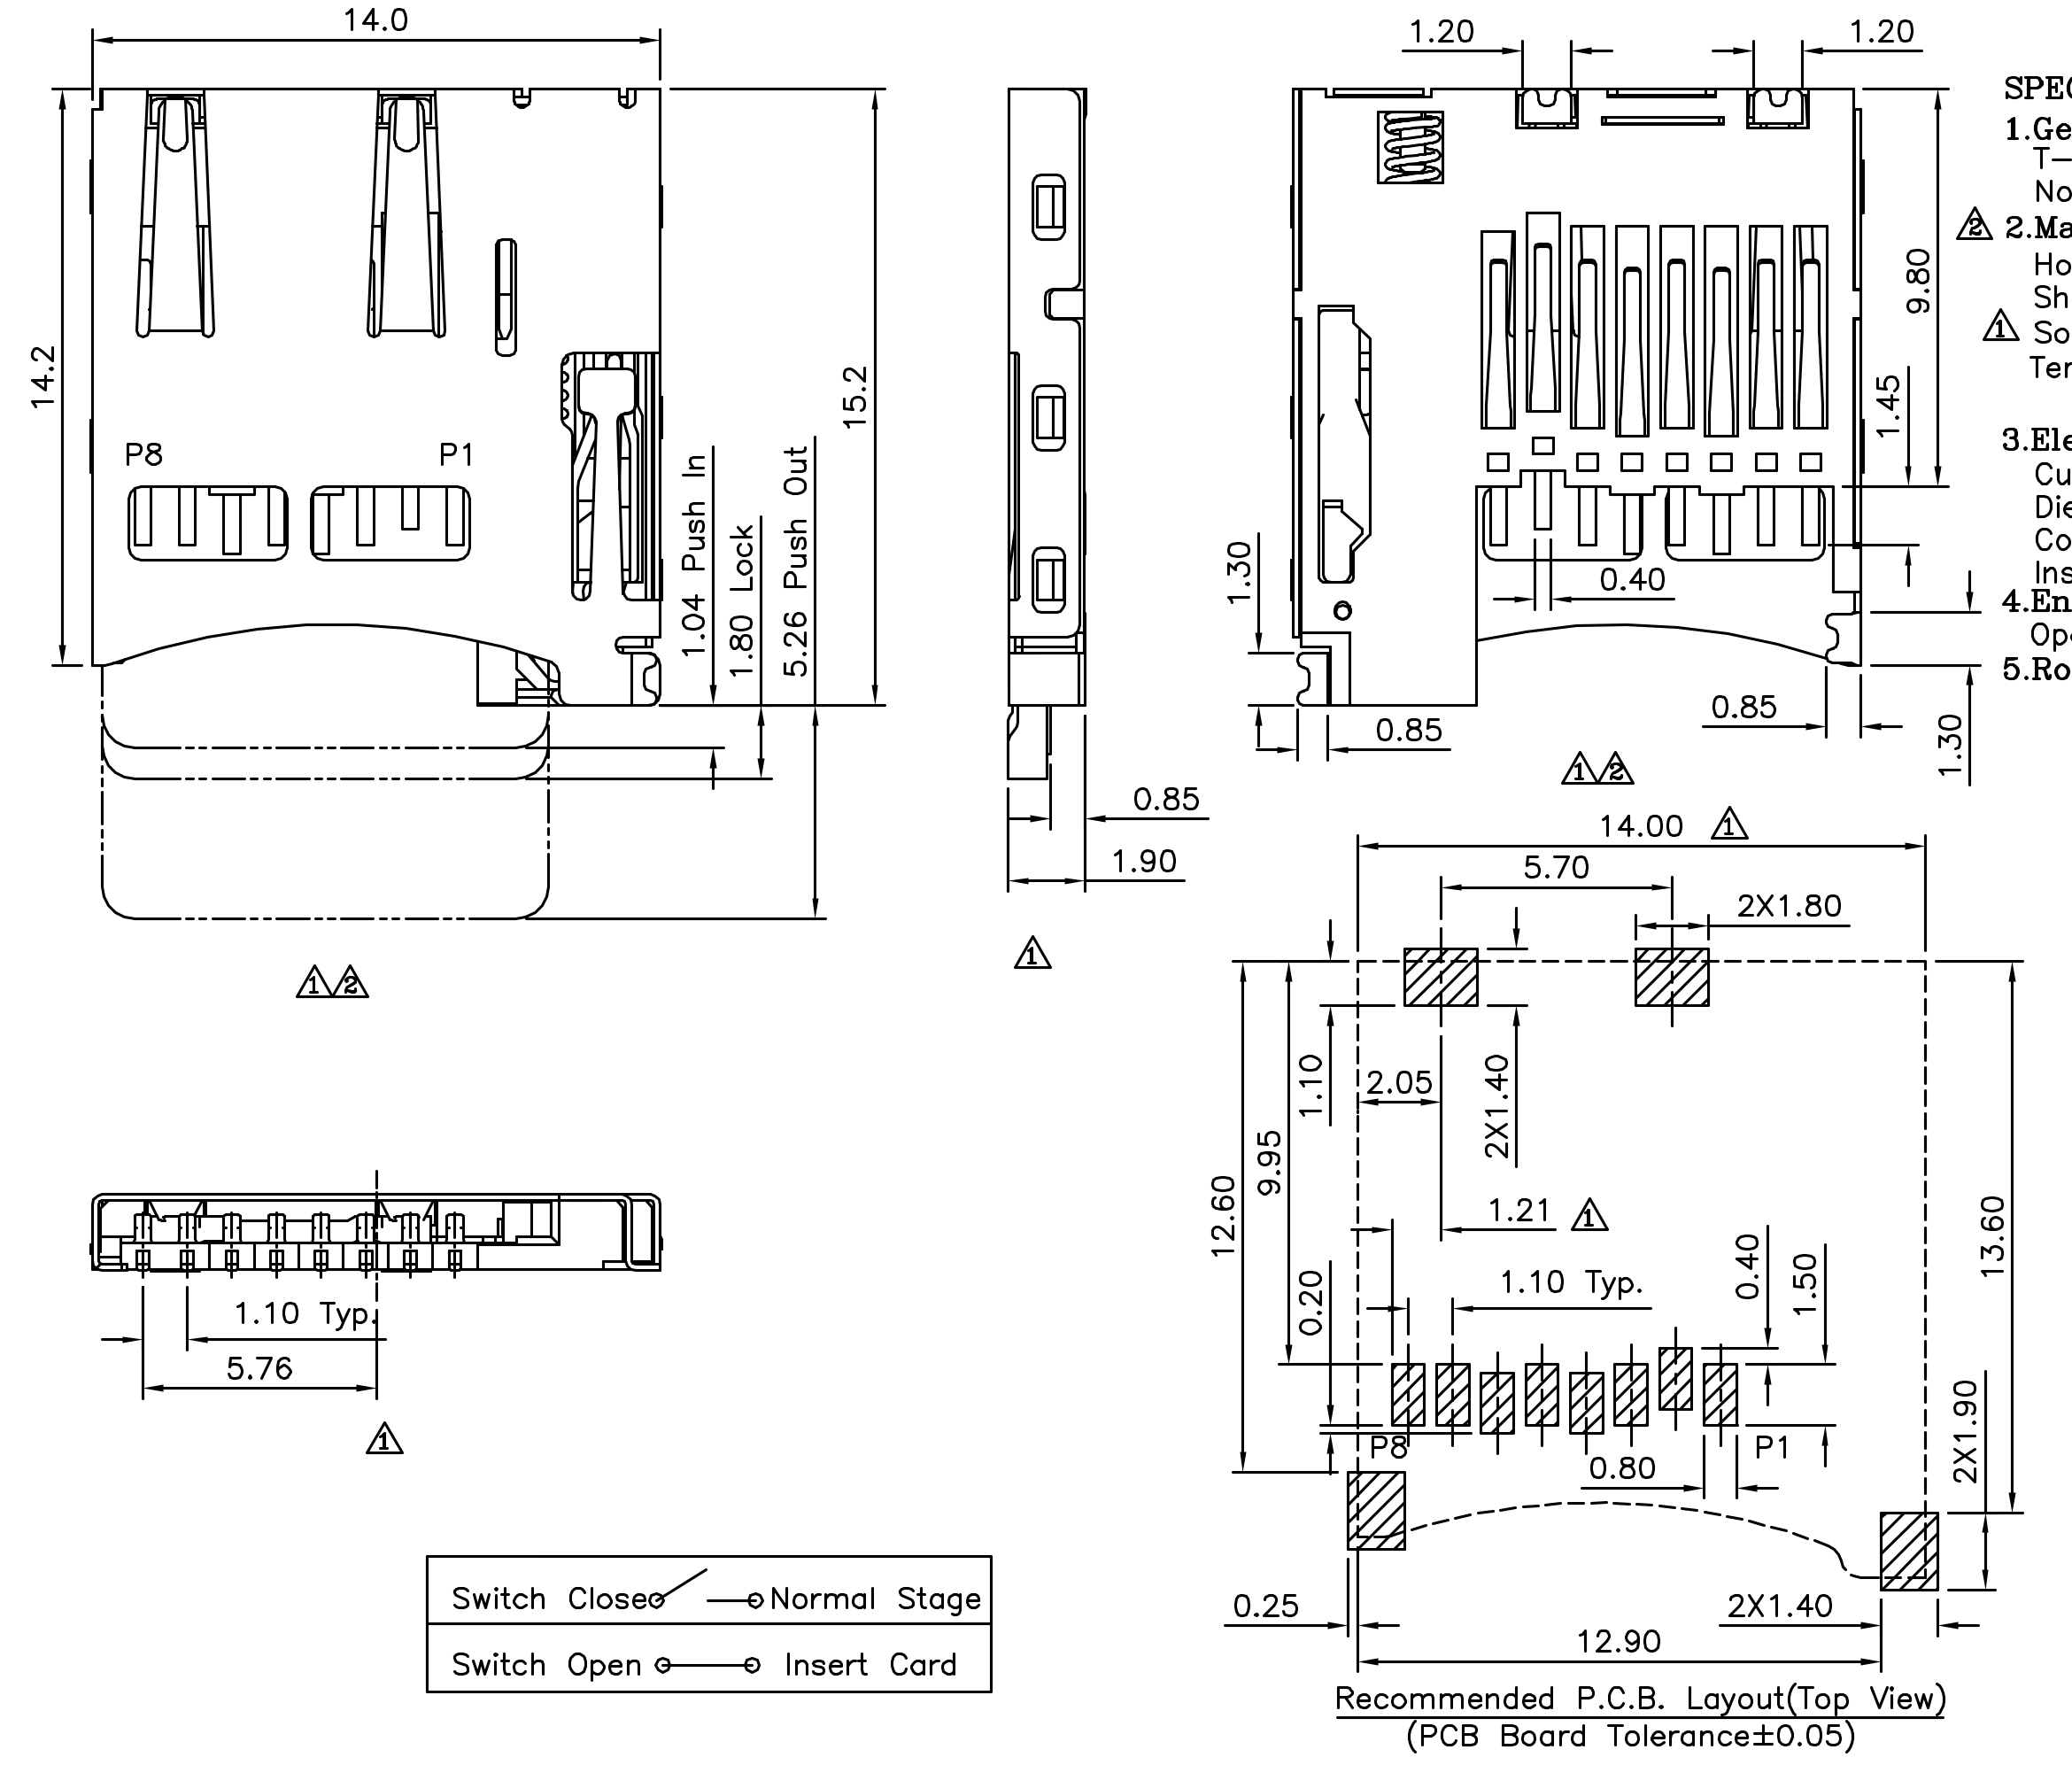 manufacturing_19656_Outline.png